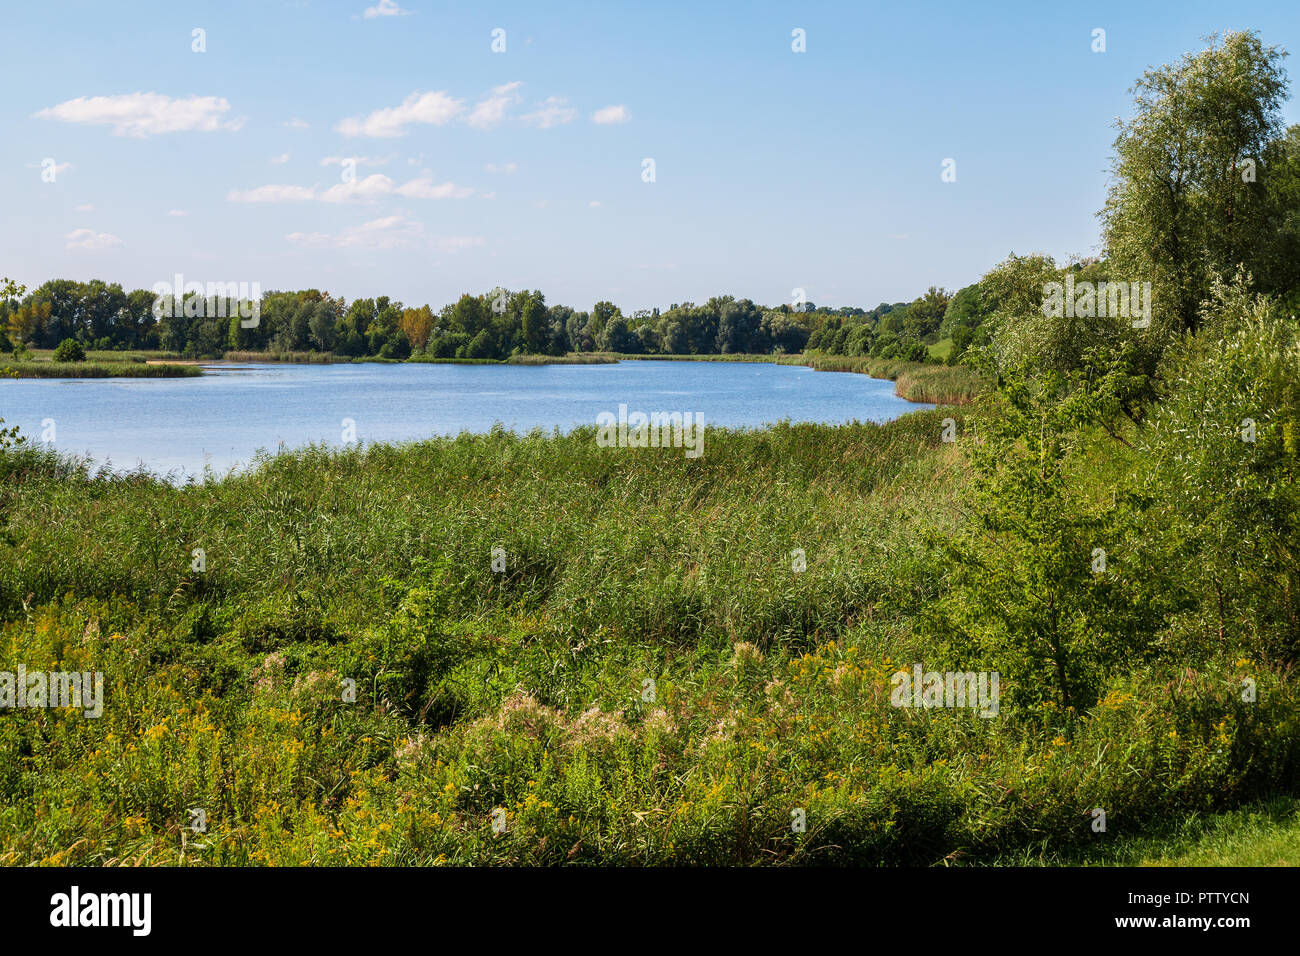 Lake in a park Stock Photo